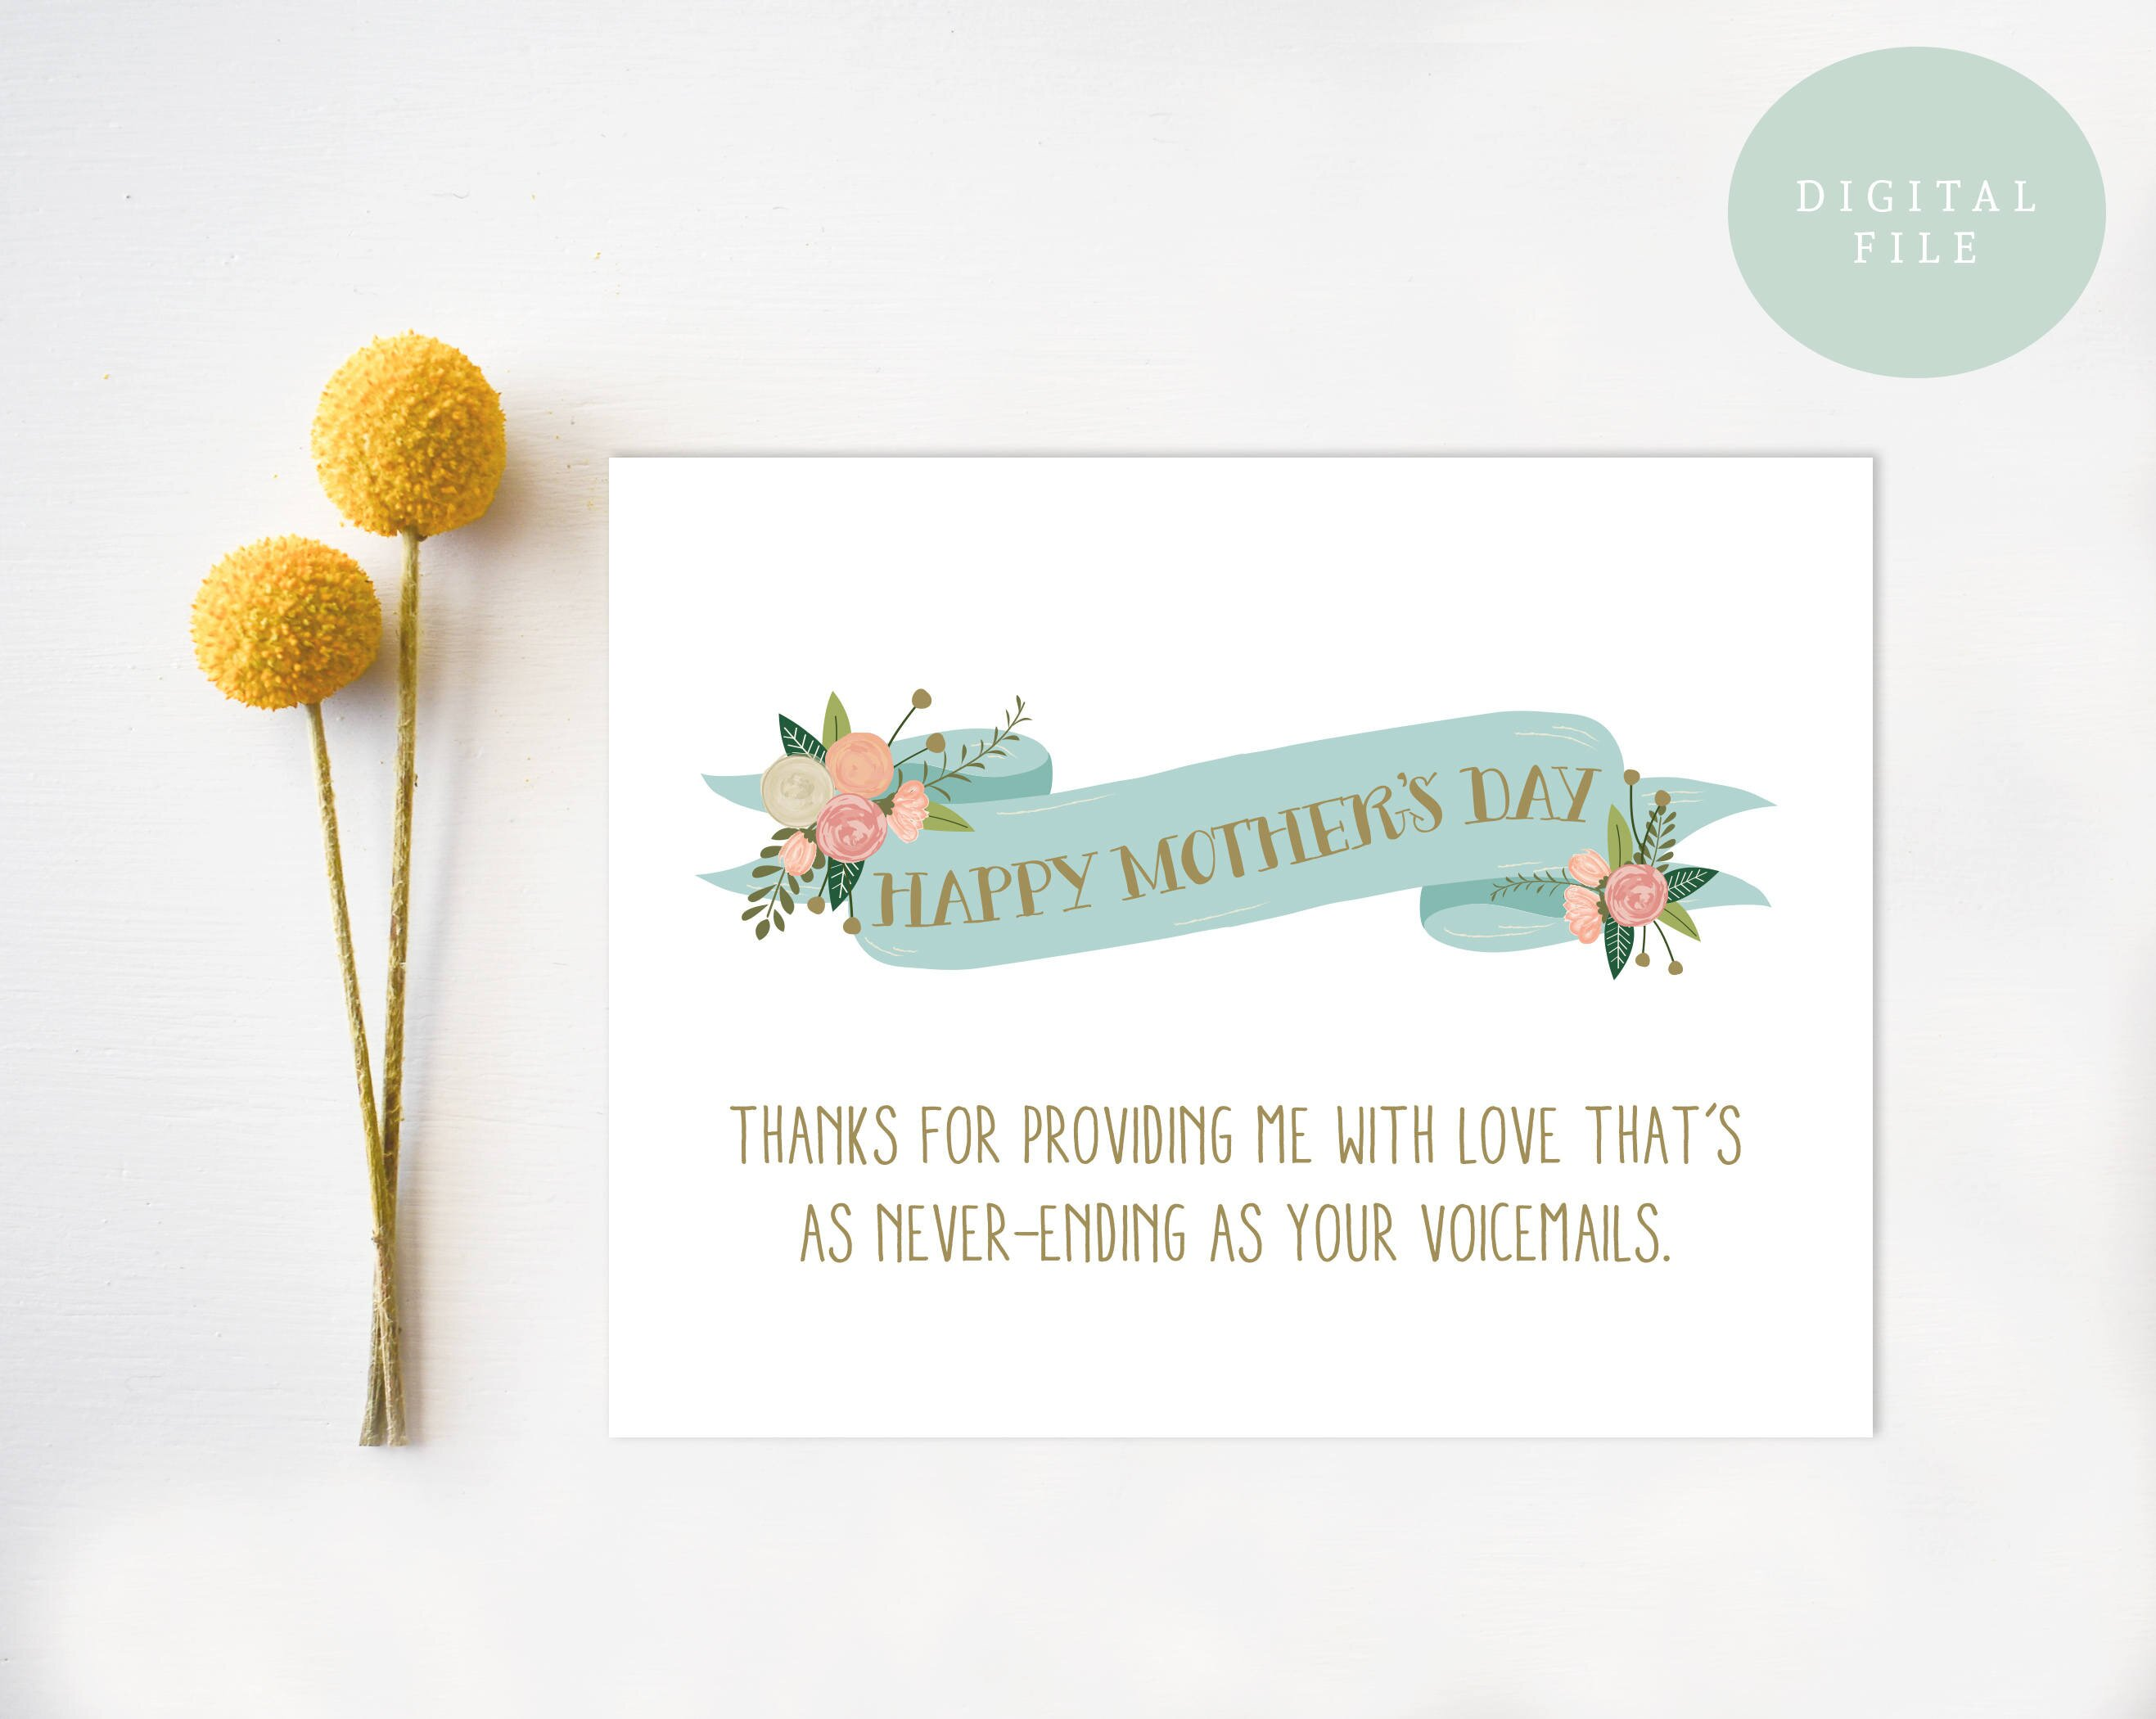 mother's day card says thanks for providing me with love that's as never-ending as your voicemails